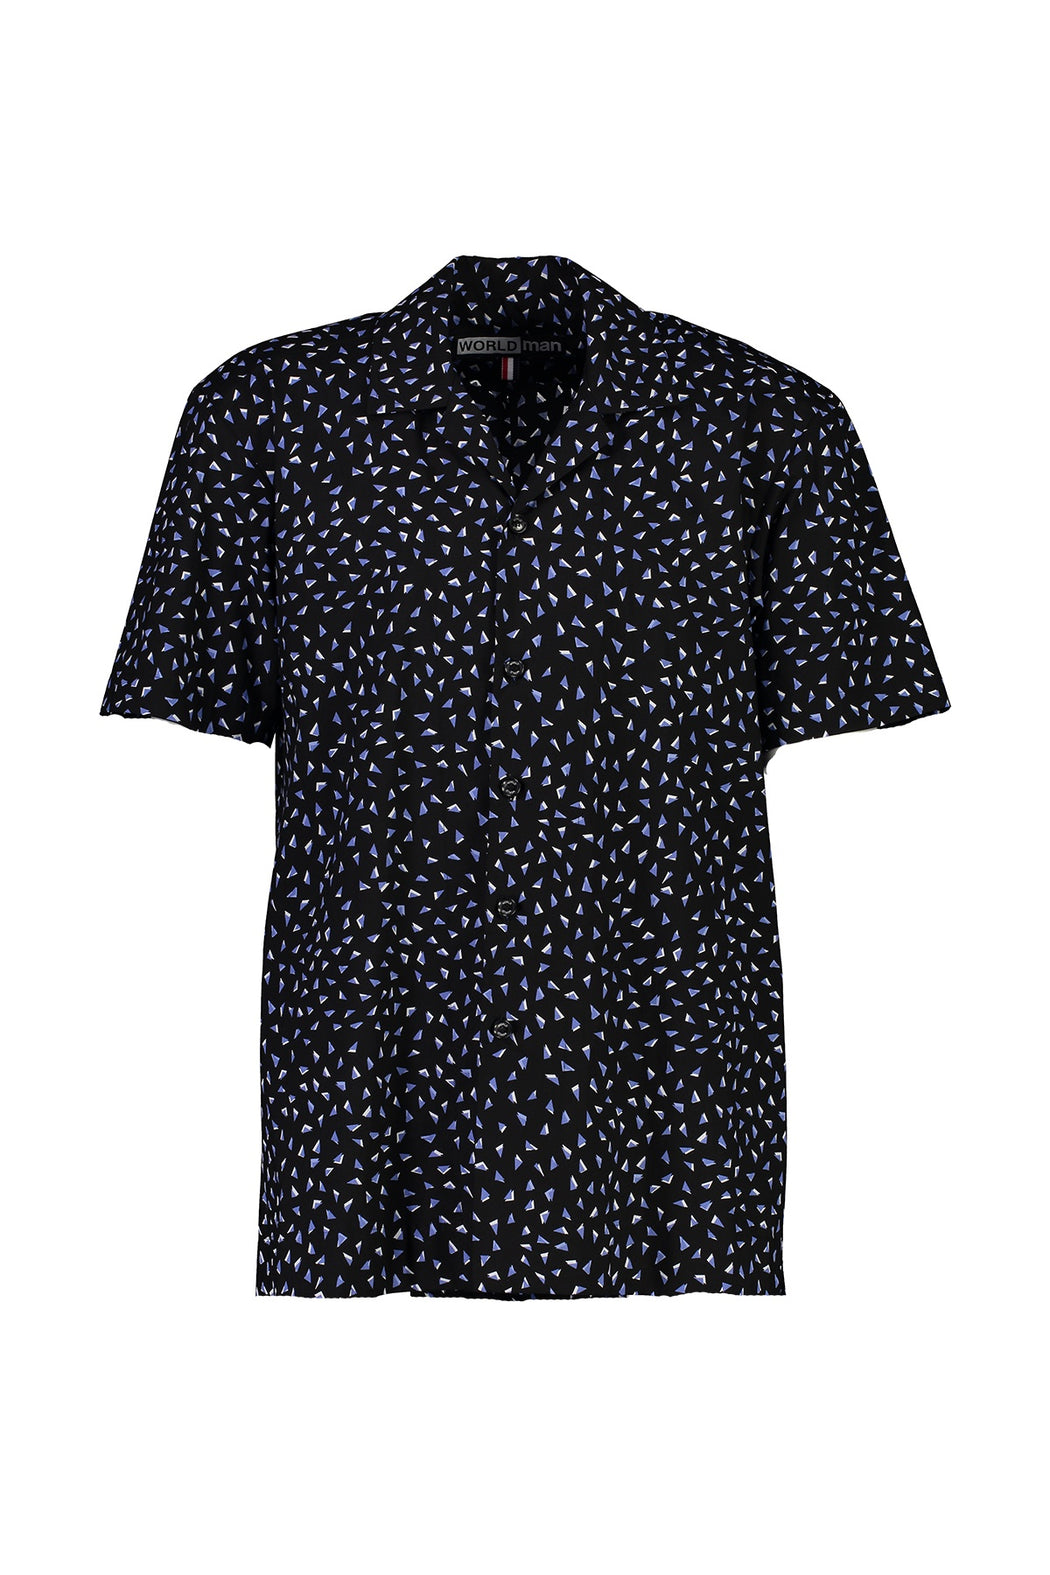 WORLDman 4565 False S/S Shirt Black